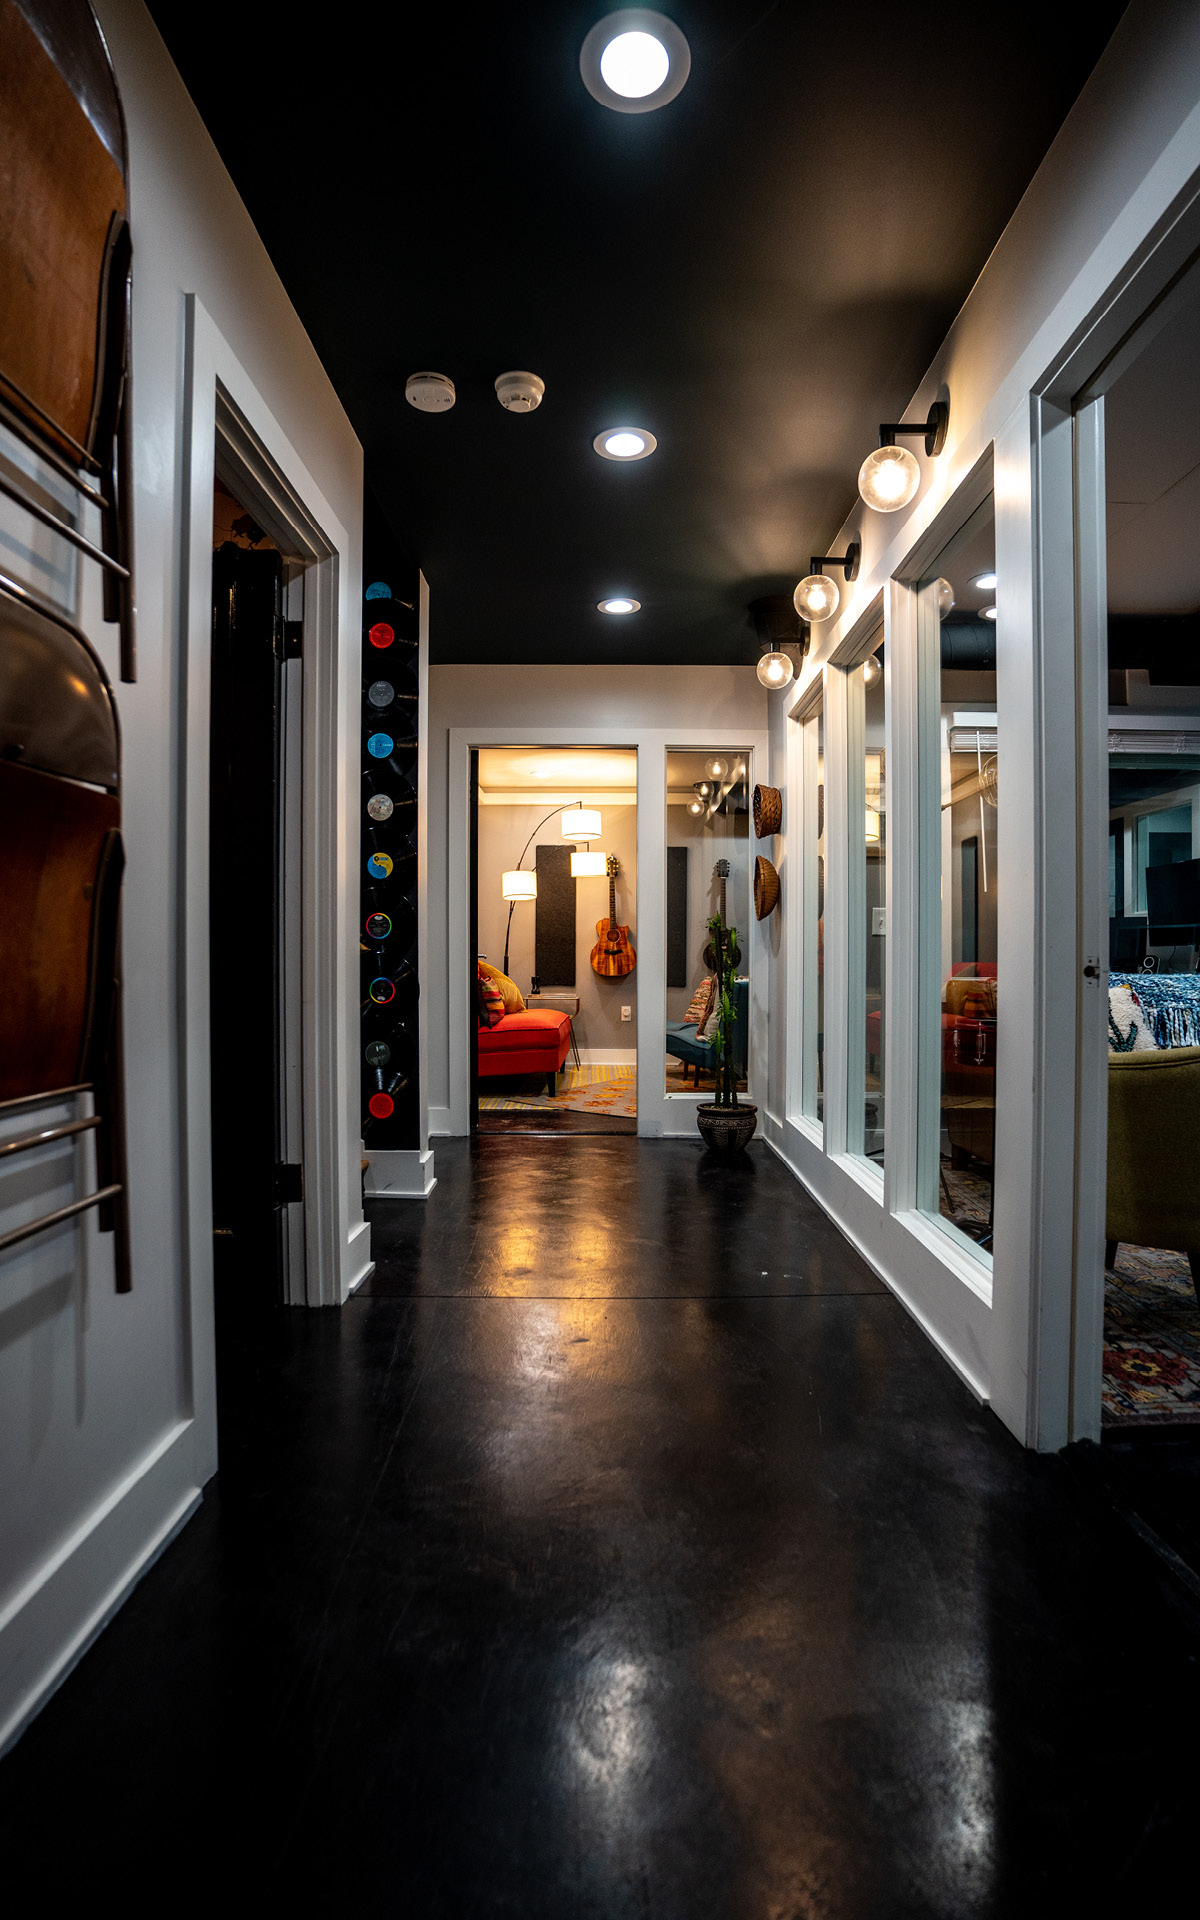 The basement hallway that leads to another office, recording studios, and lounge space